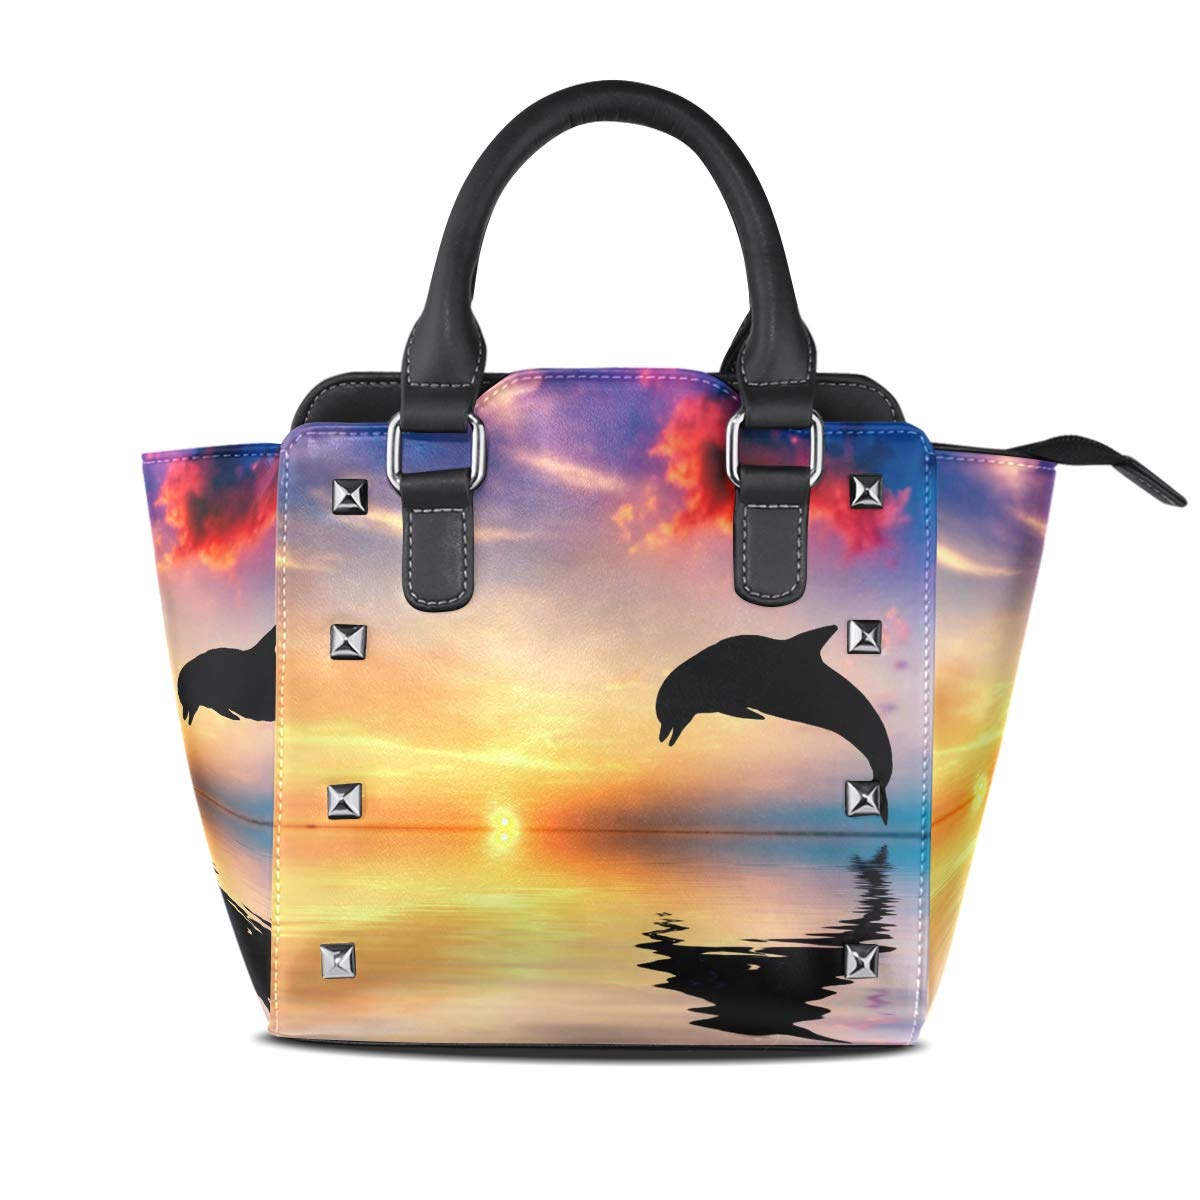 Design 1 Handbag Dolphins Out Of The Sea Sunset Genuine Leather Tote Rivet Bag Shoulder Strap Top Handle Women